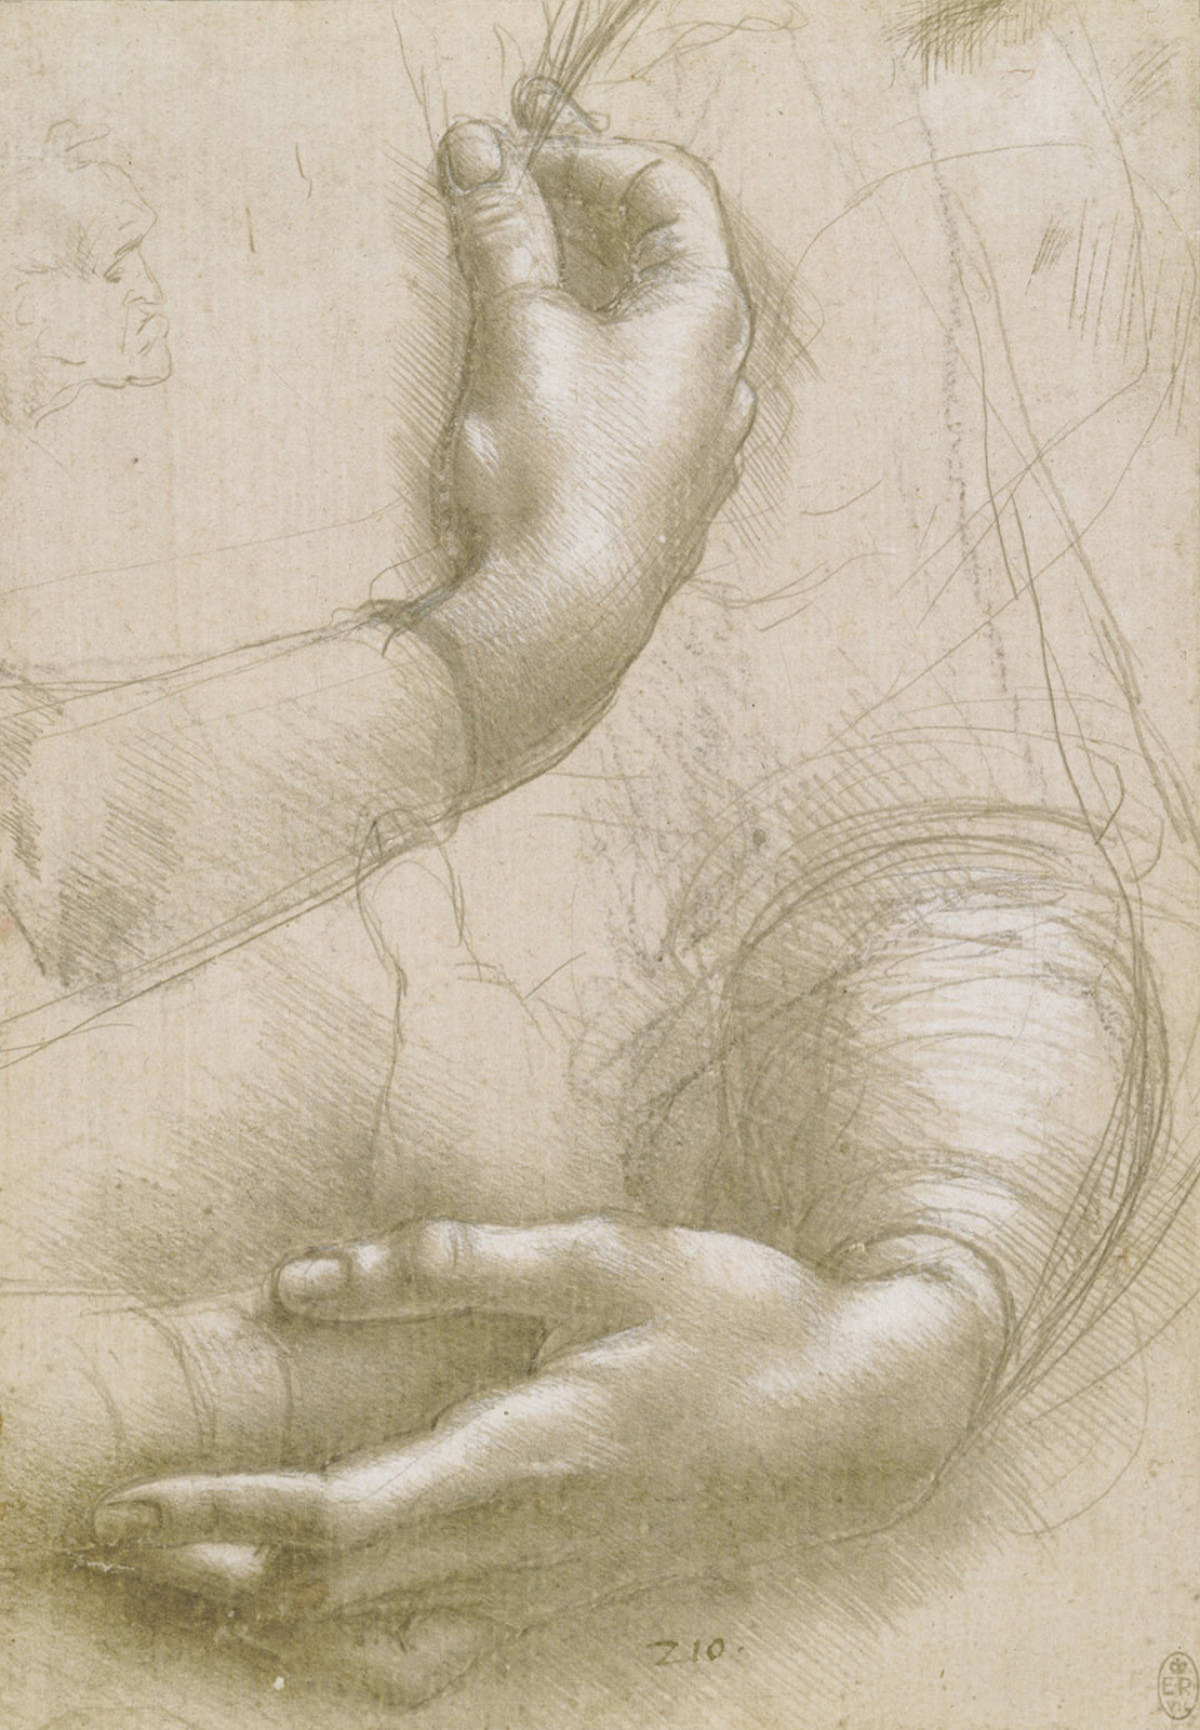 Leonardo da Vinci, Studies of Hands, c. 1489–90, 214 x 150 mm, metalpoint on prepared paper, Royal Collection, London